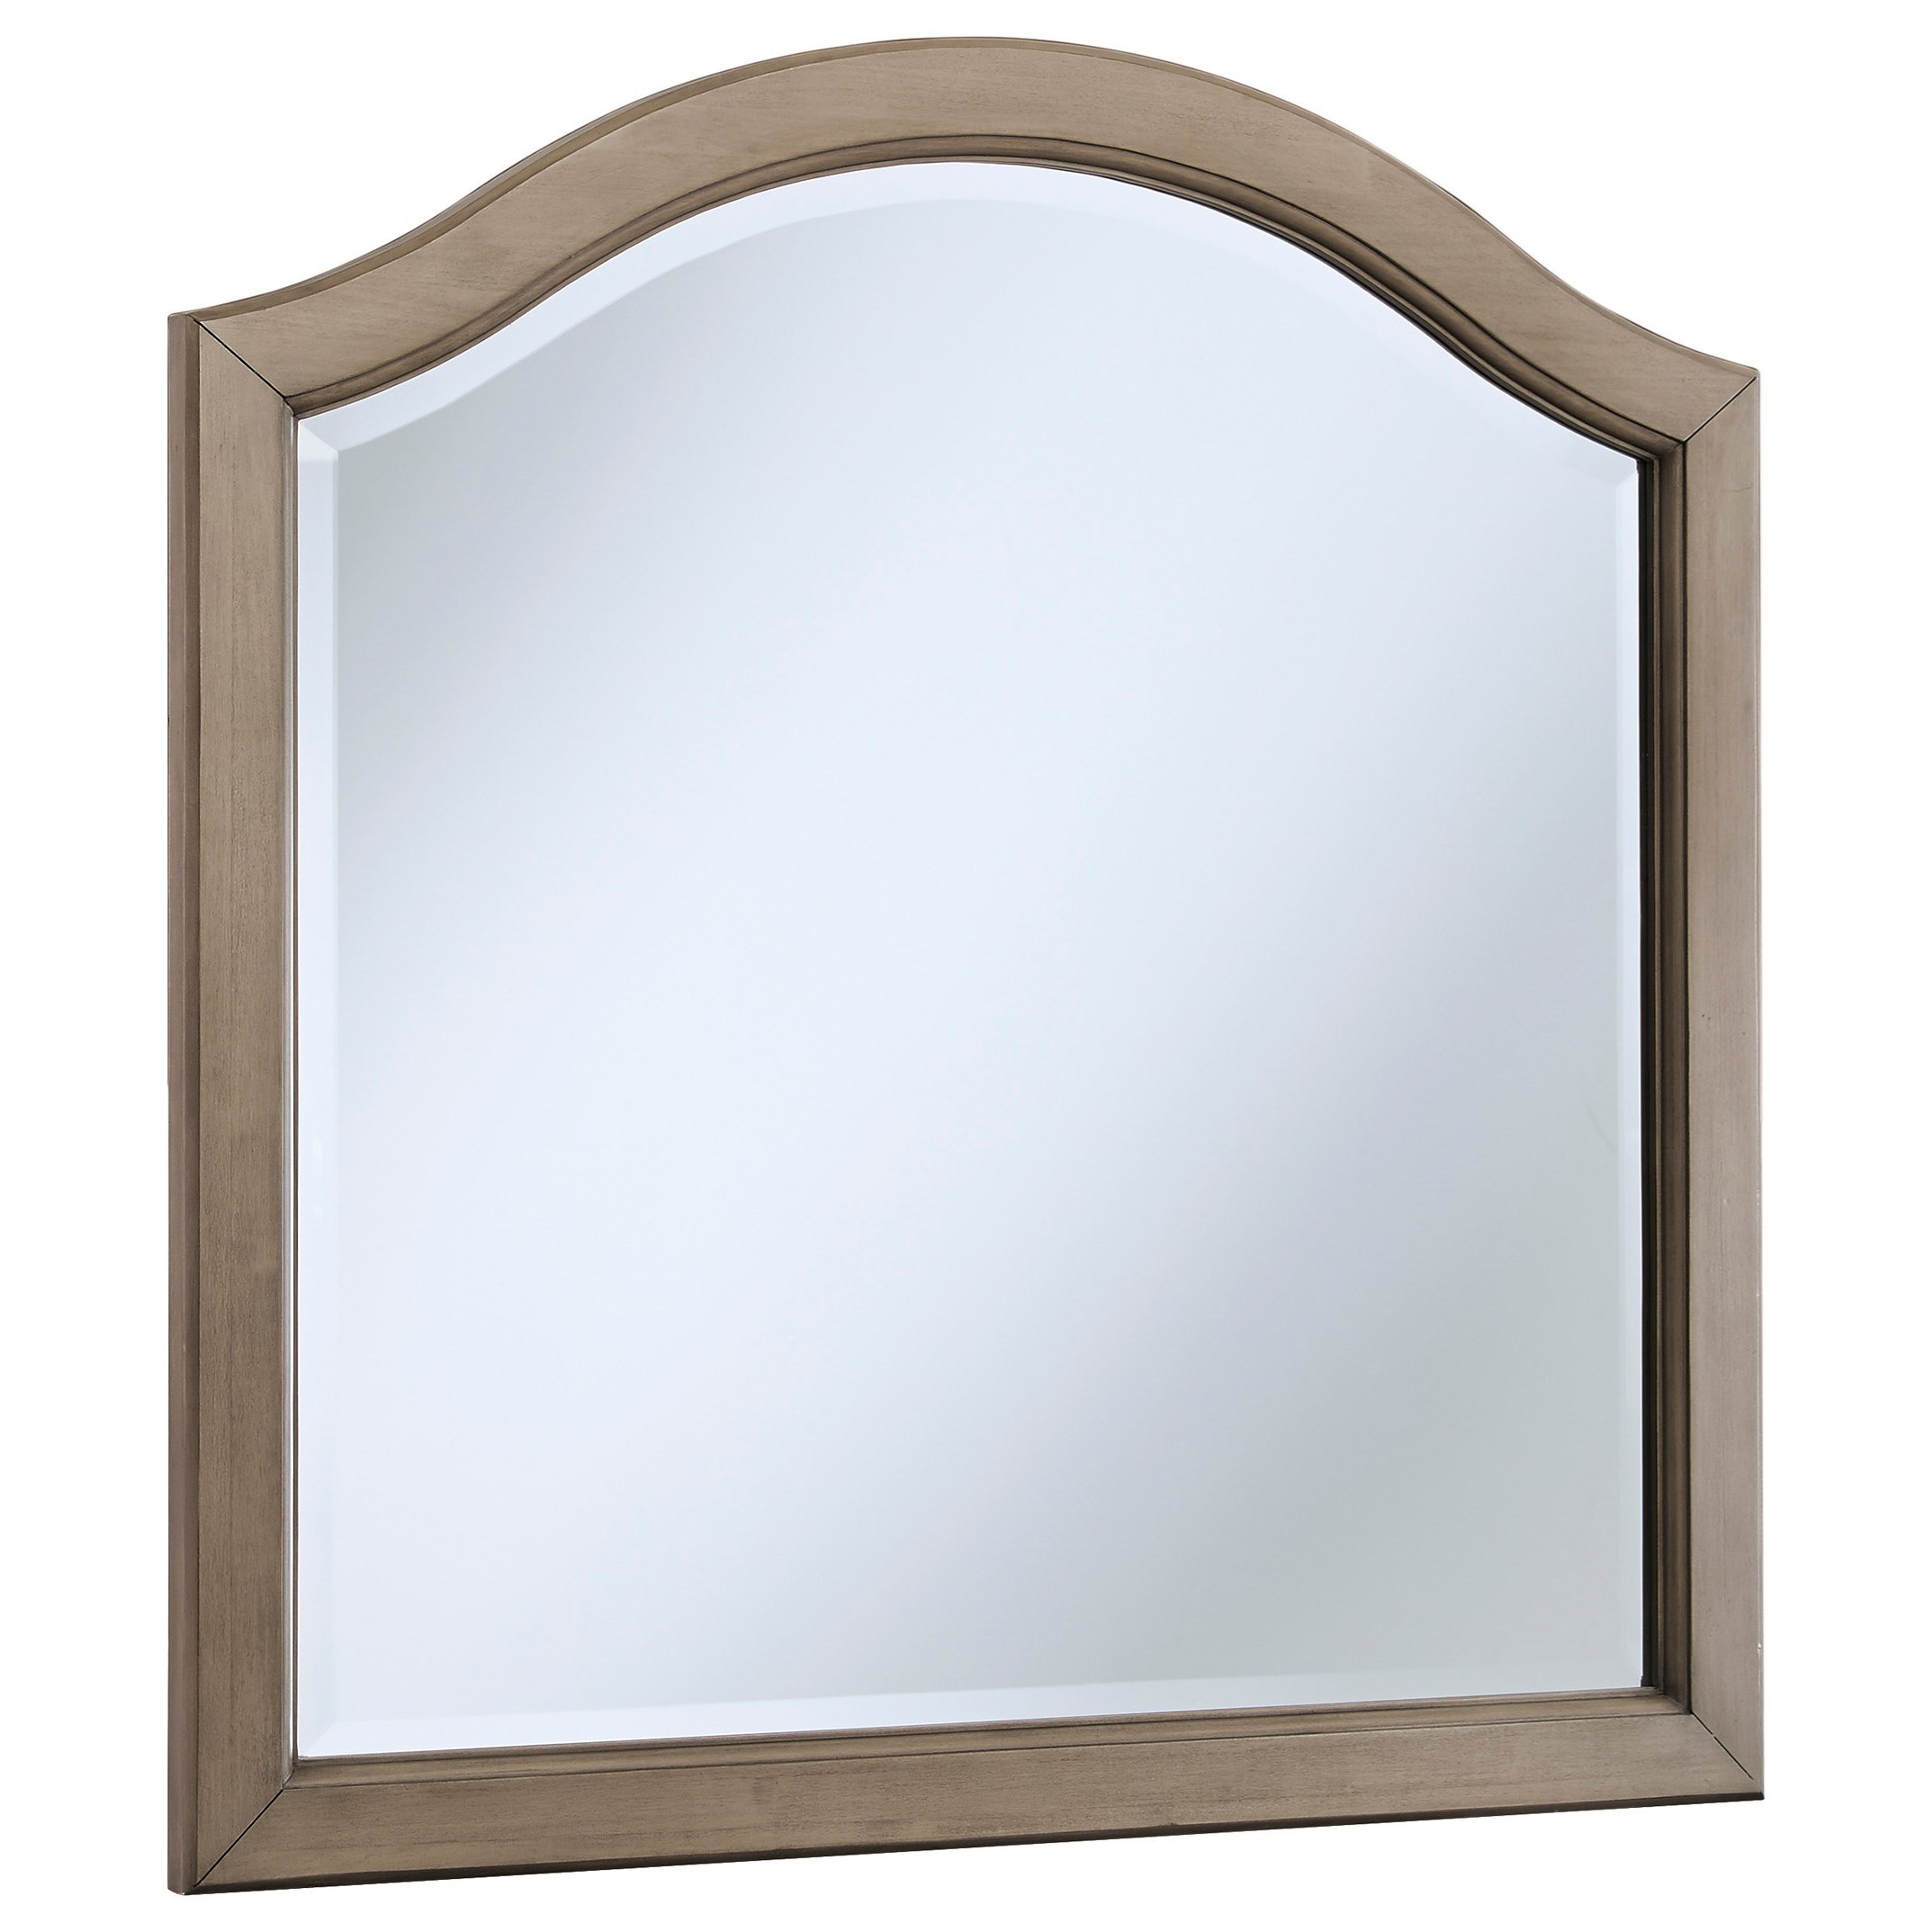 Lettner Bedroom Mirror by Signature Design by Ashley at Furniture Barn